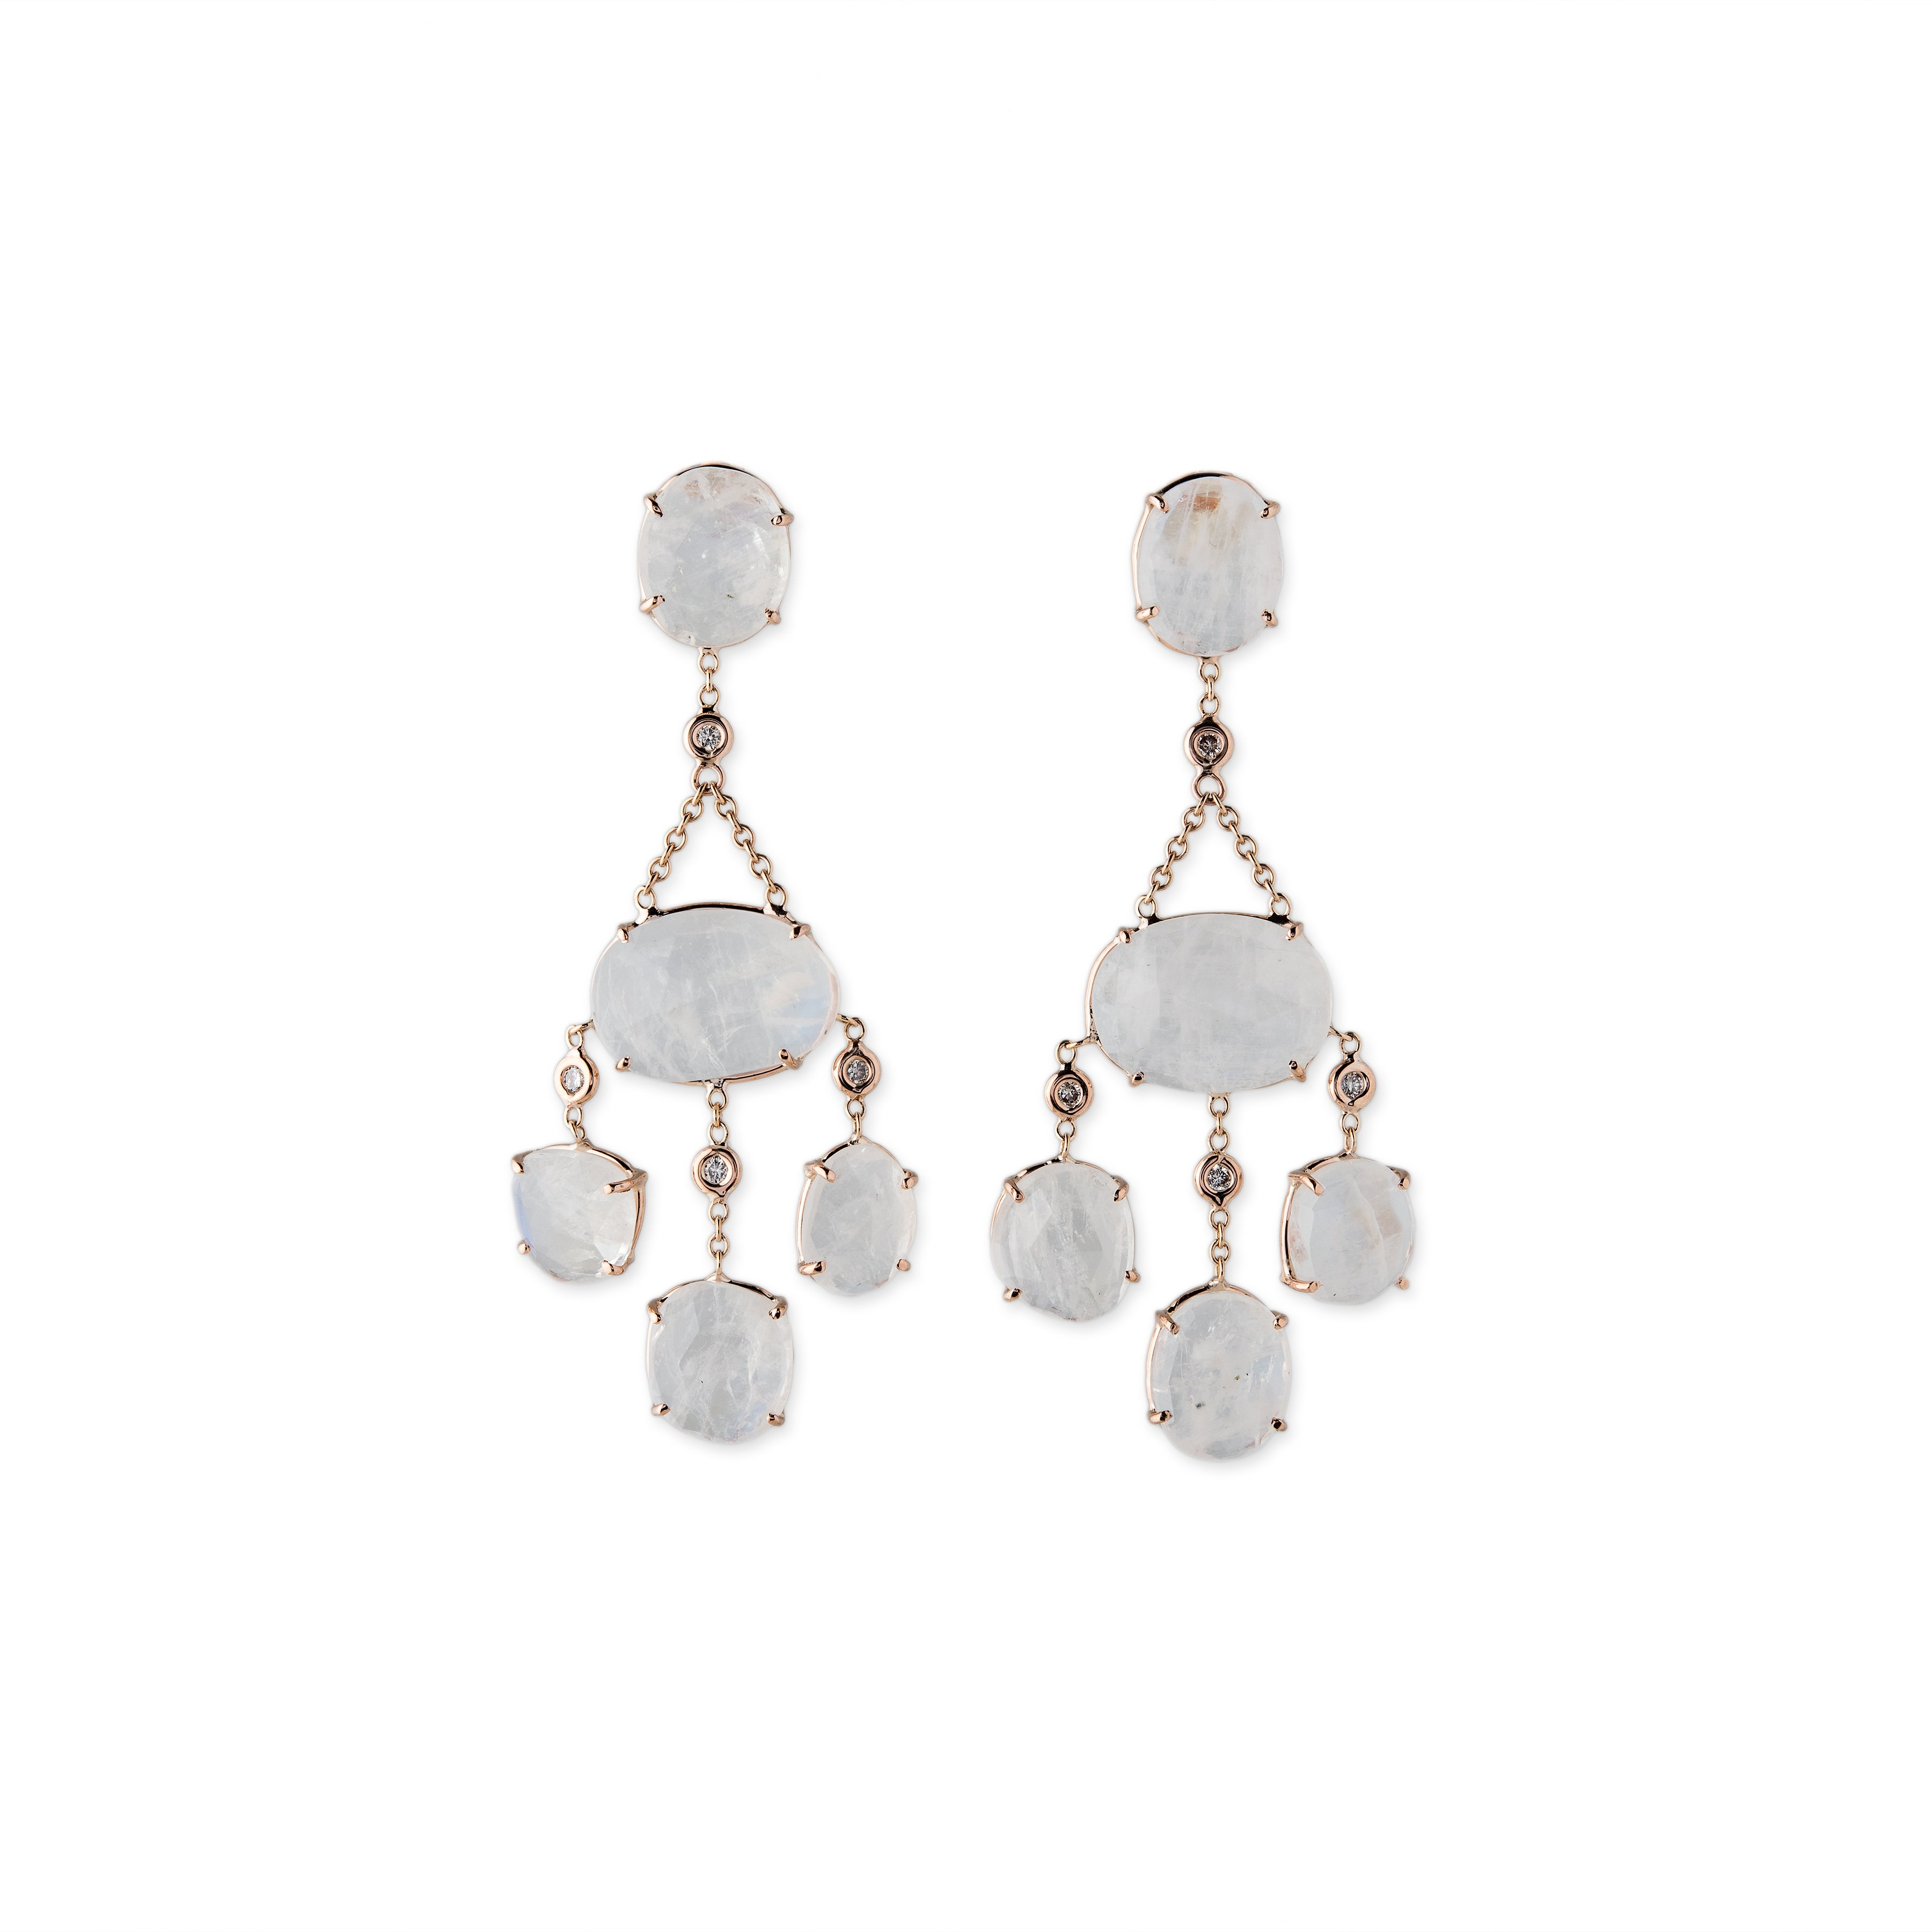 Image of Moonstone and Diamond Drop Earrings